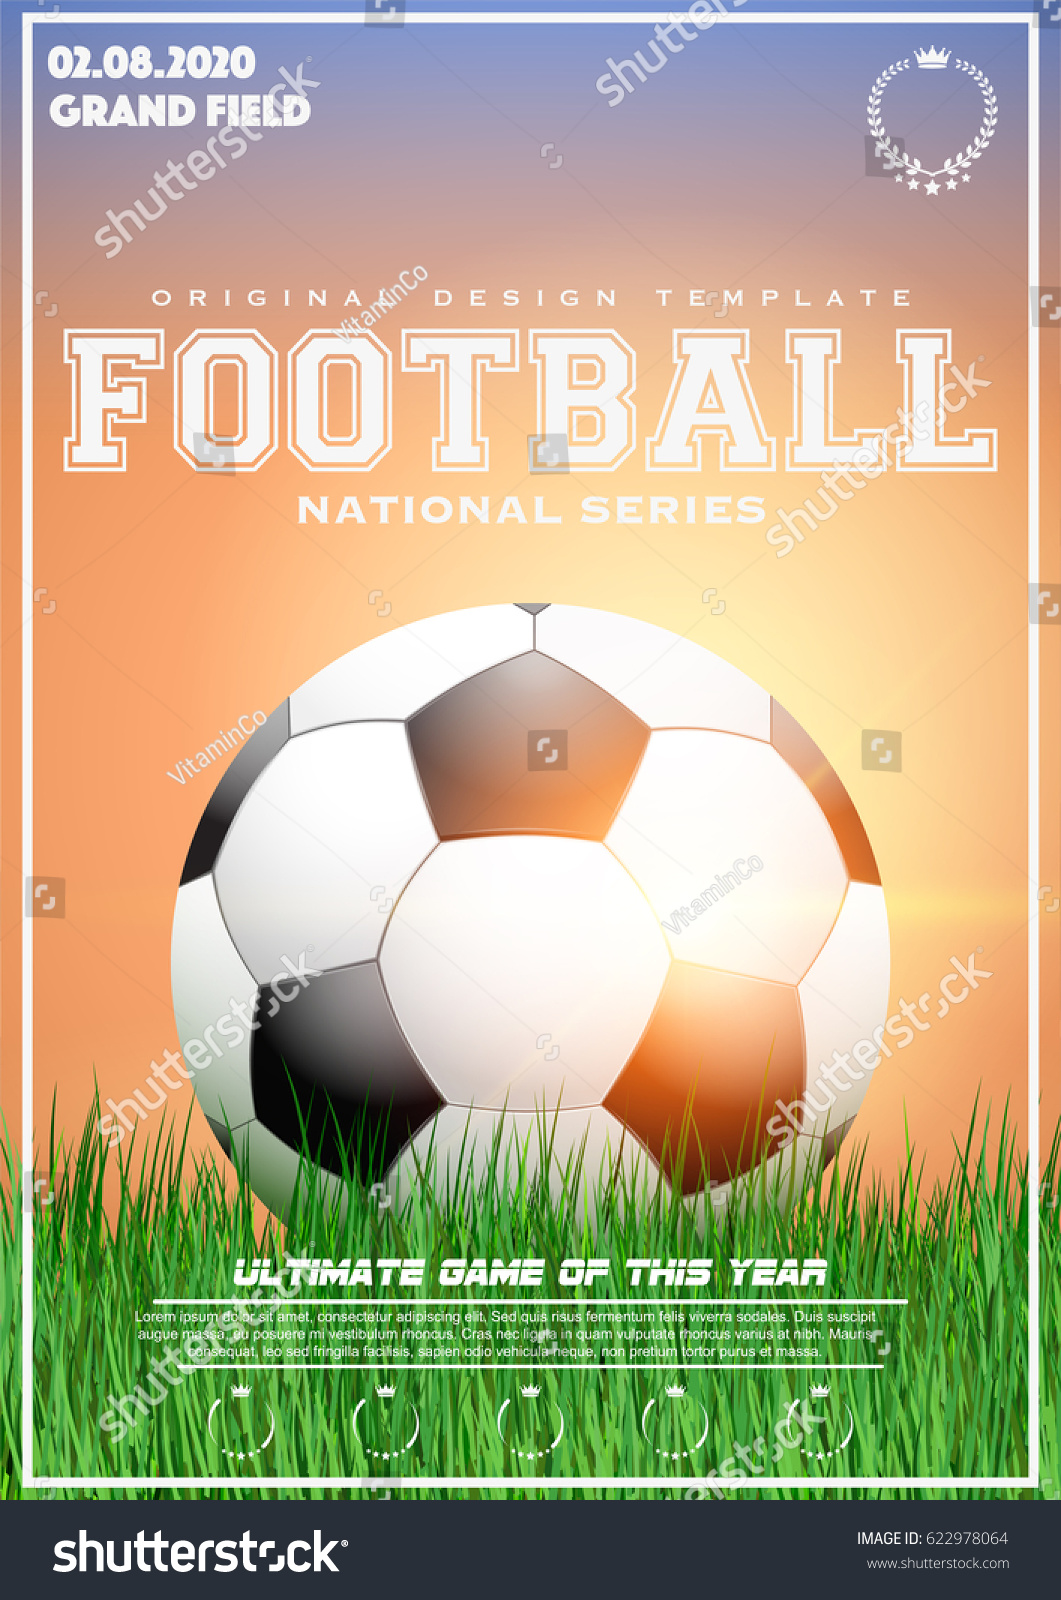 poster template football tournament soccer ball のベクター画像素材